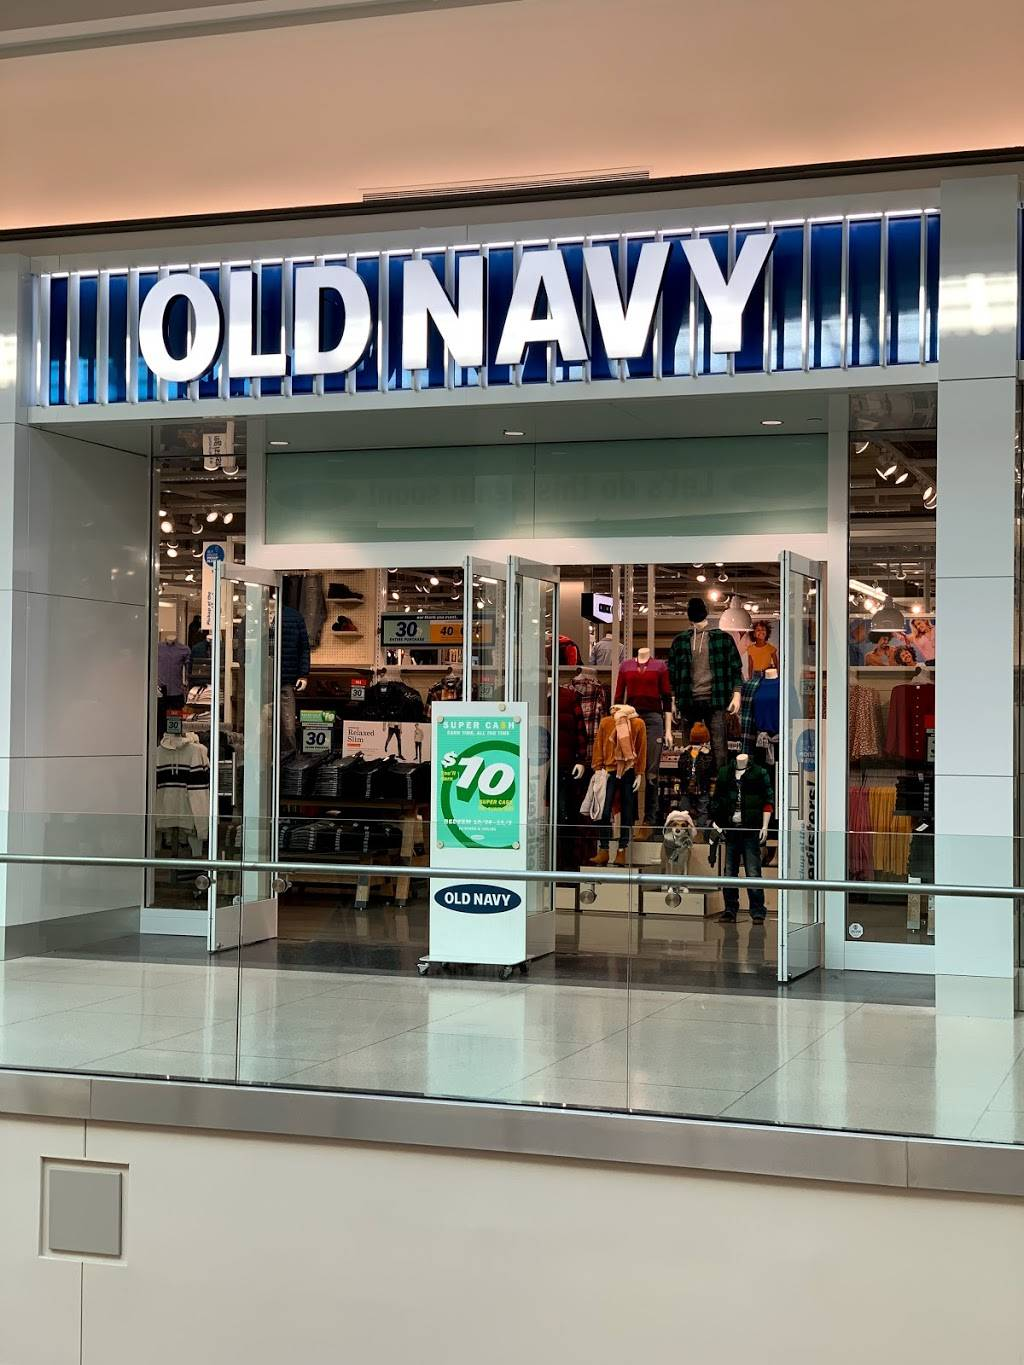 Old Navy - with Curbside Pickup - clothing store  | Photo 1 of 10 | Address: 301 S Hills Village Space 2240A, Pittsburgh, PA 15241, USA | Phone: (412) 833-6571